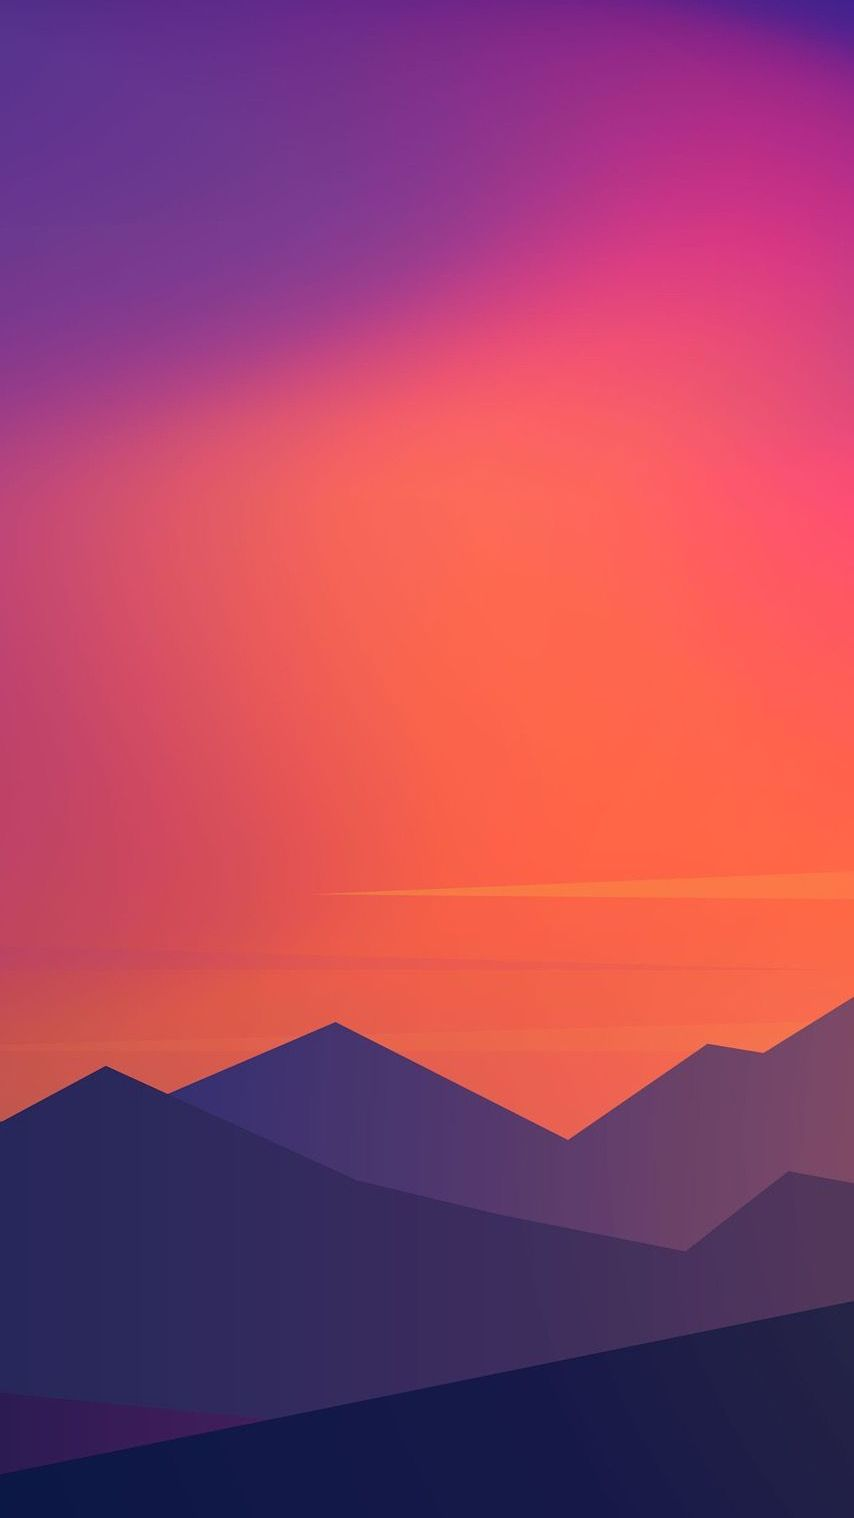 Sunset Minimal Mountains iPhone Wallpaper Aesthetic in 2019 854x1518